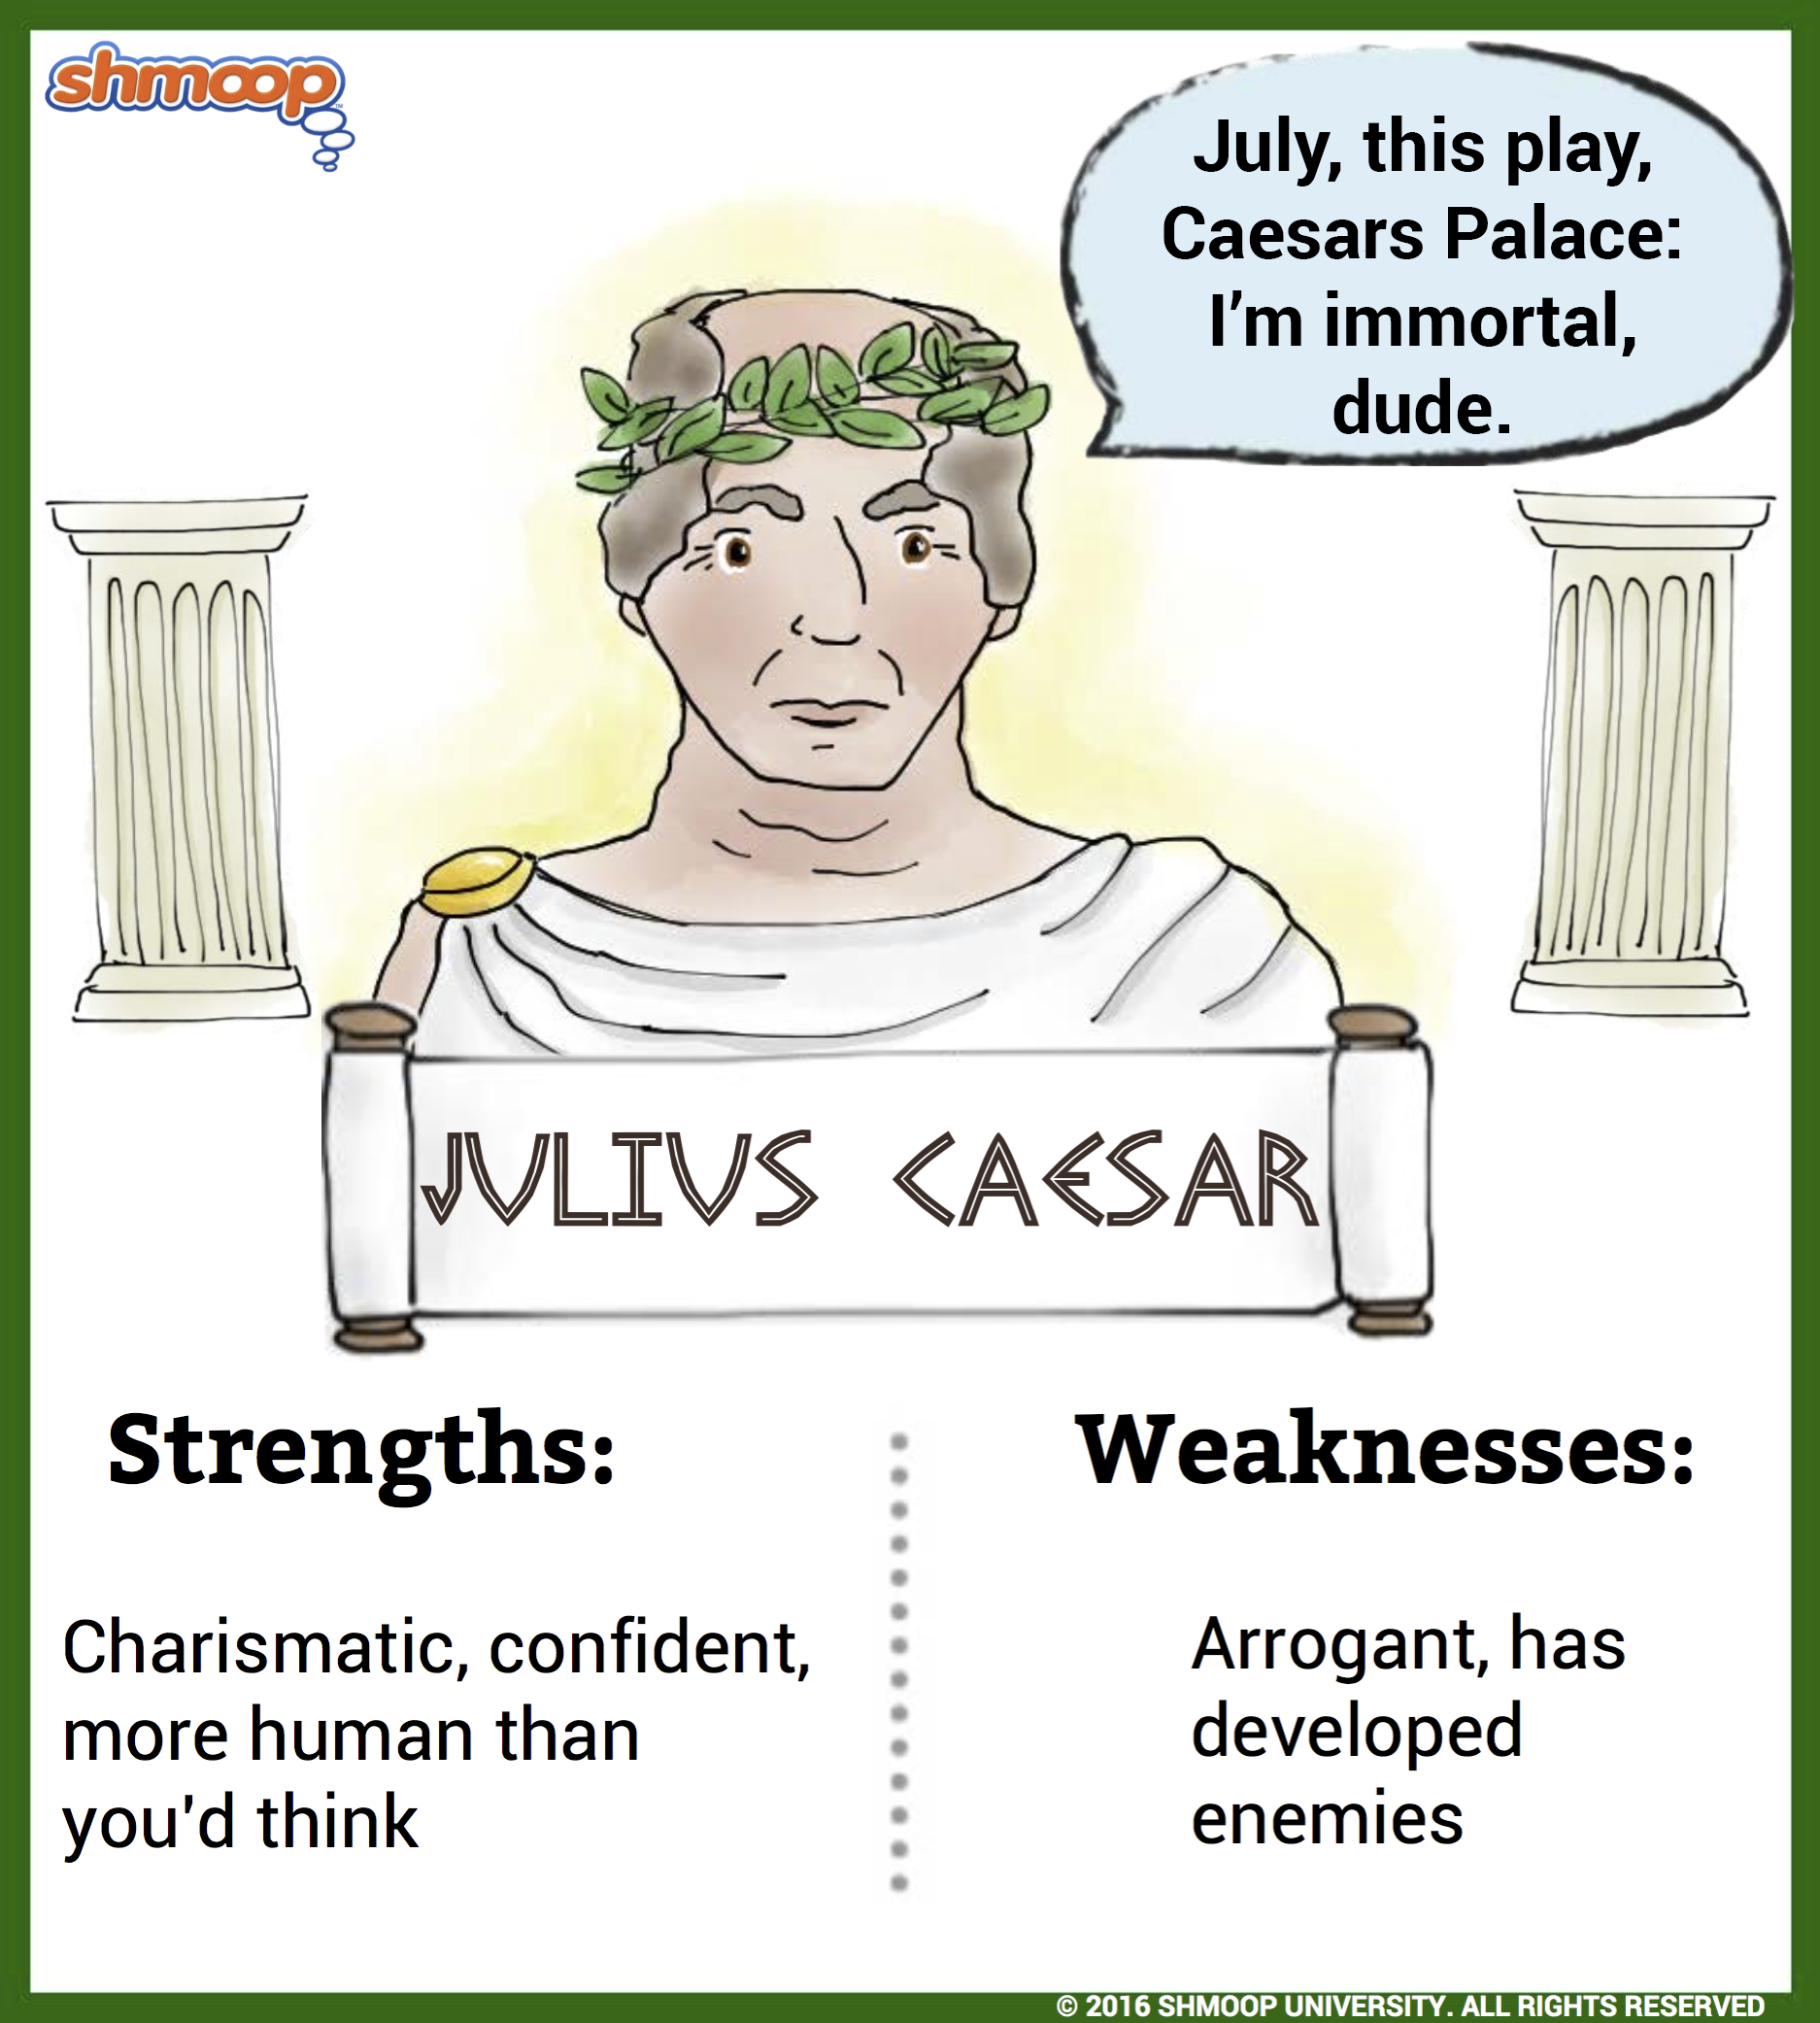 an analysis of brutus in julius caesar by william shakespeare Drama study guide the tragedy of julius caesar the life and work of william shakespeare drama study guide: the tragedy of julius caesar by.